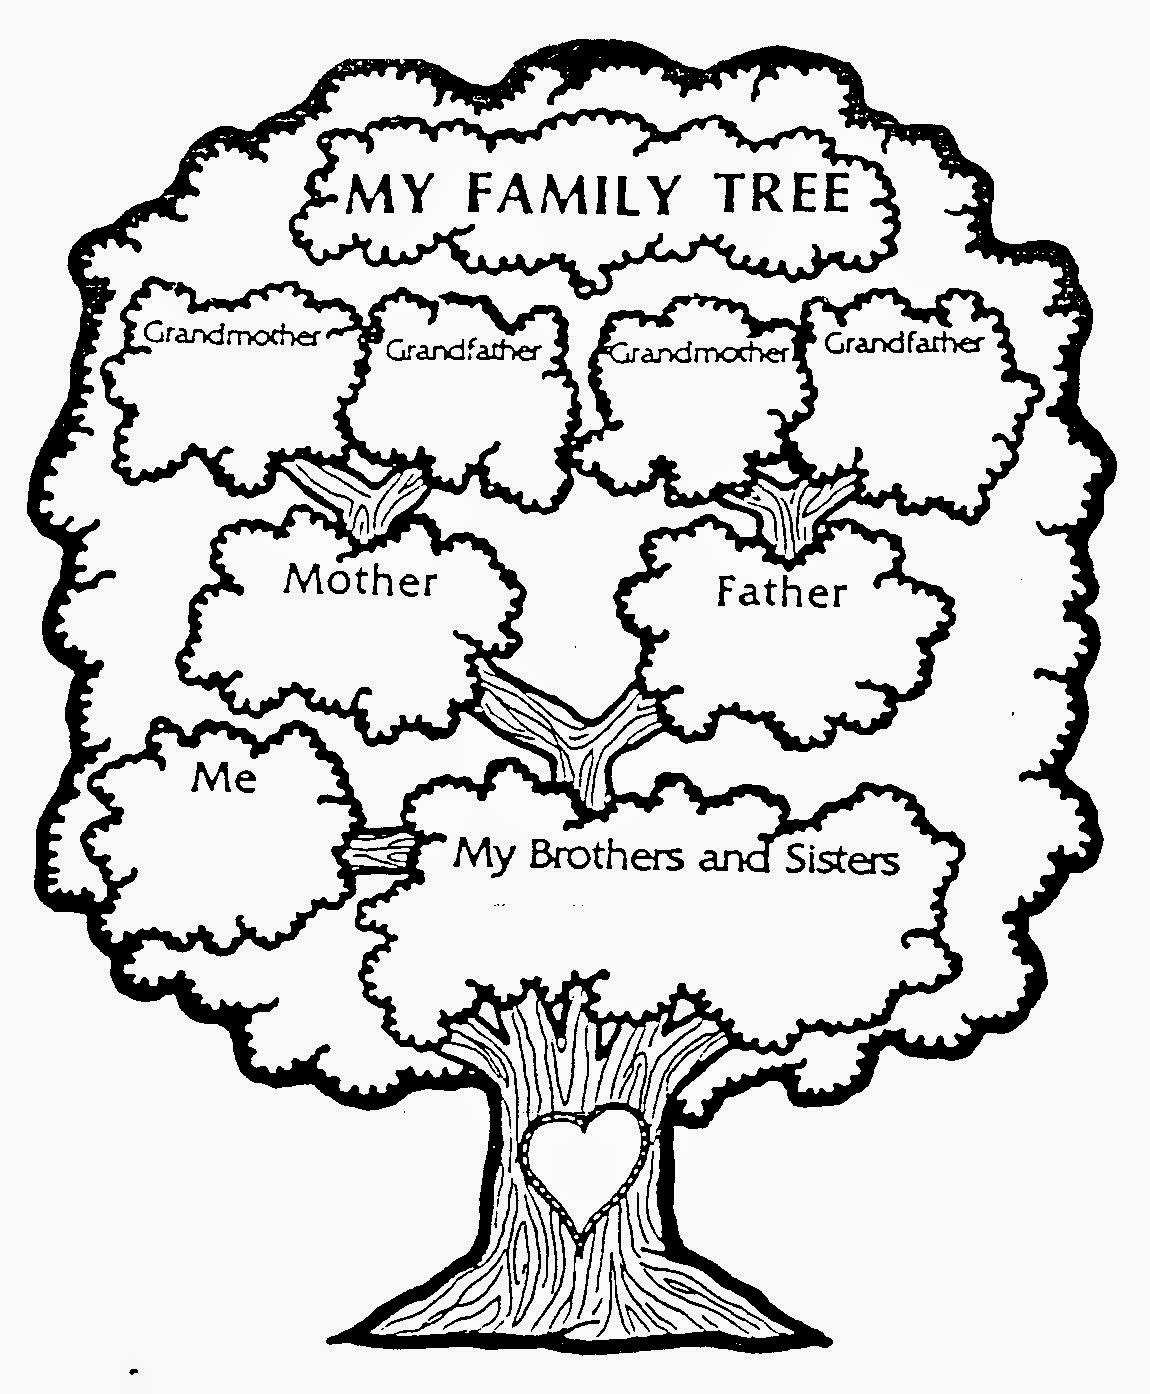 Creative Family Tree Drawings my Family Tree